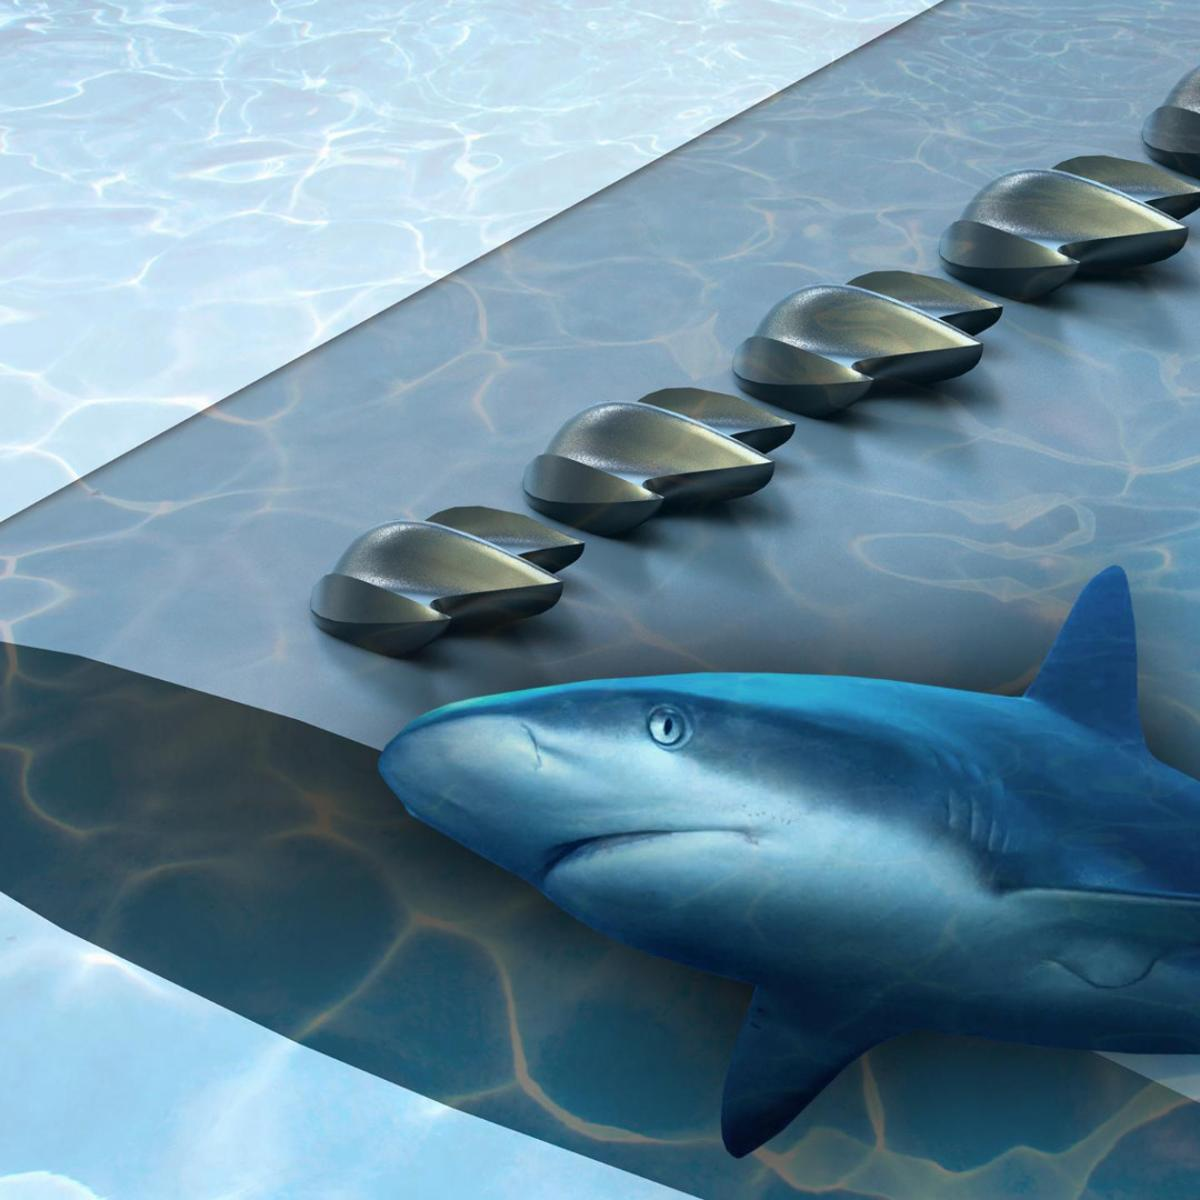 In a new study, researchers turned to shark scales in anattemptto improve the aerodynamic performance of planes, drones and wind turbines